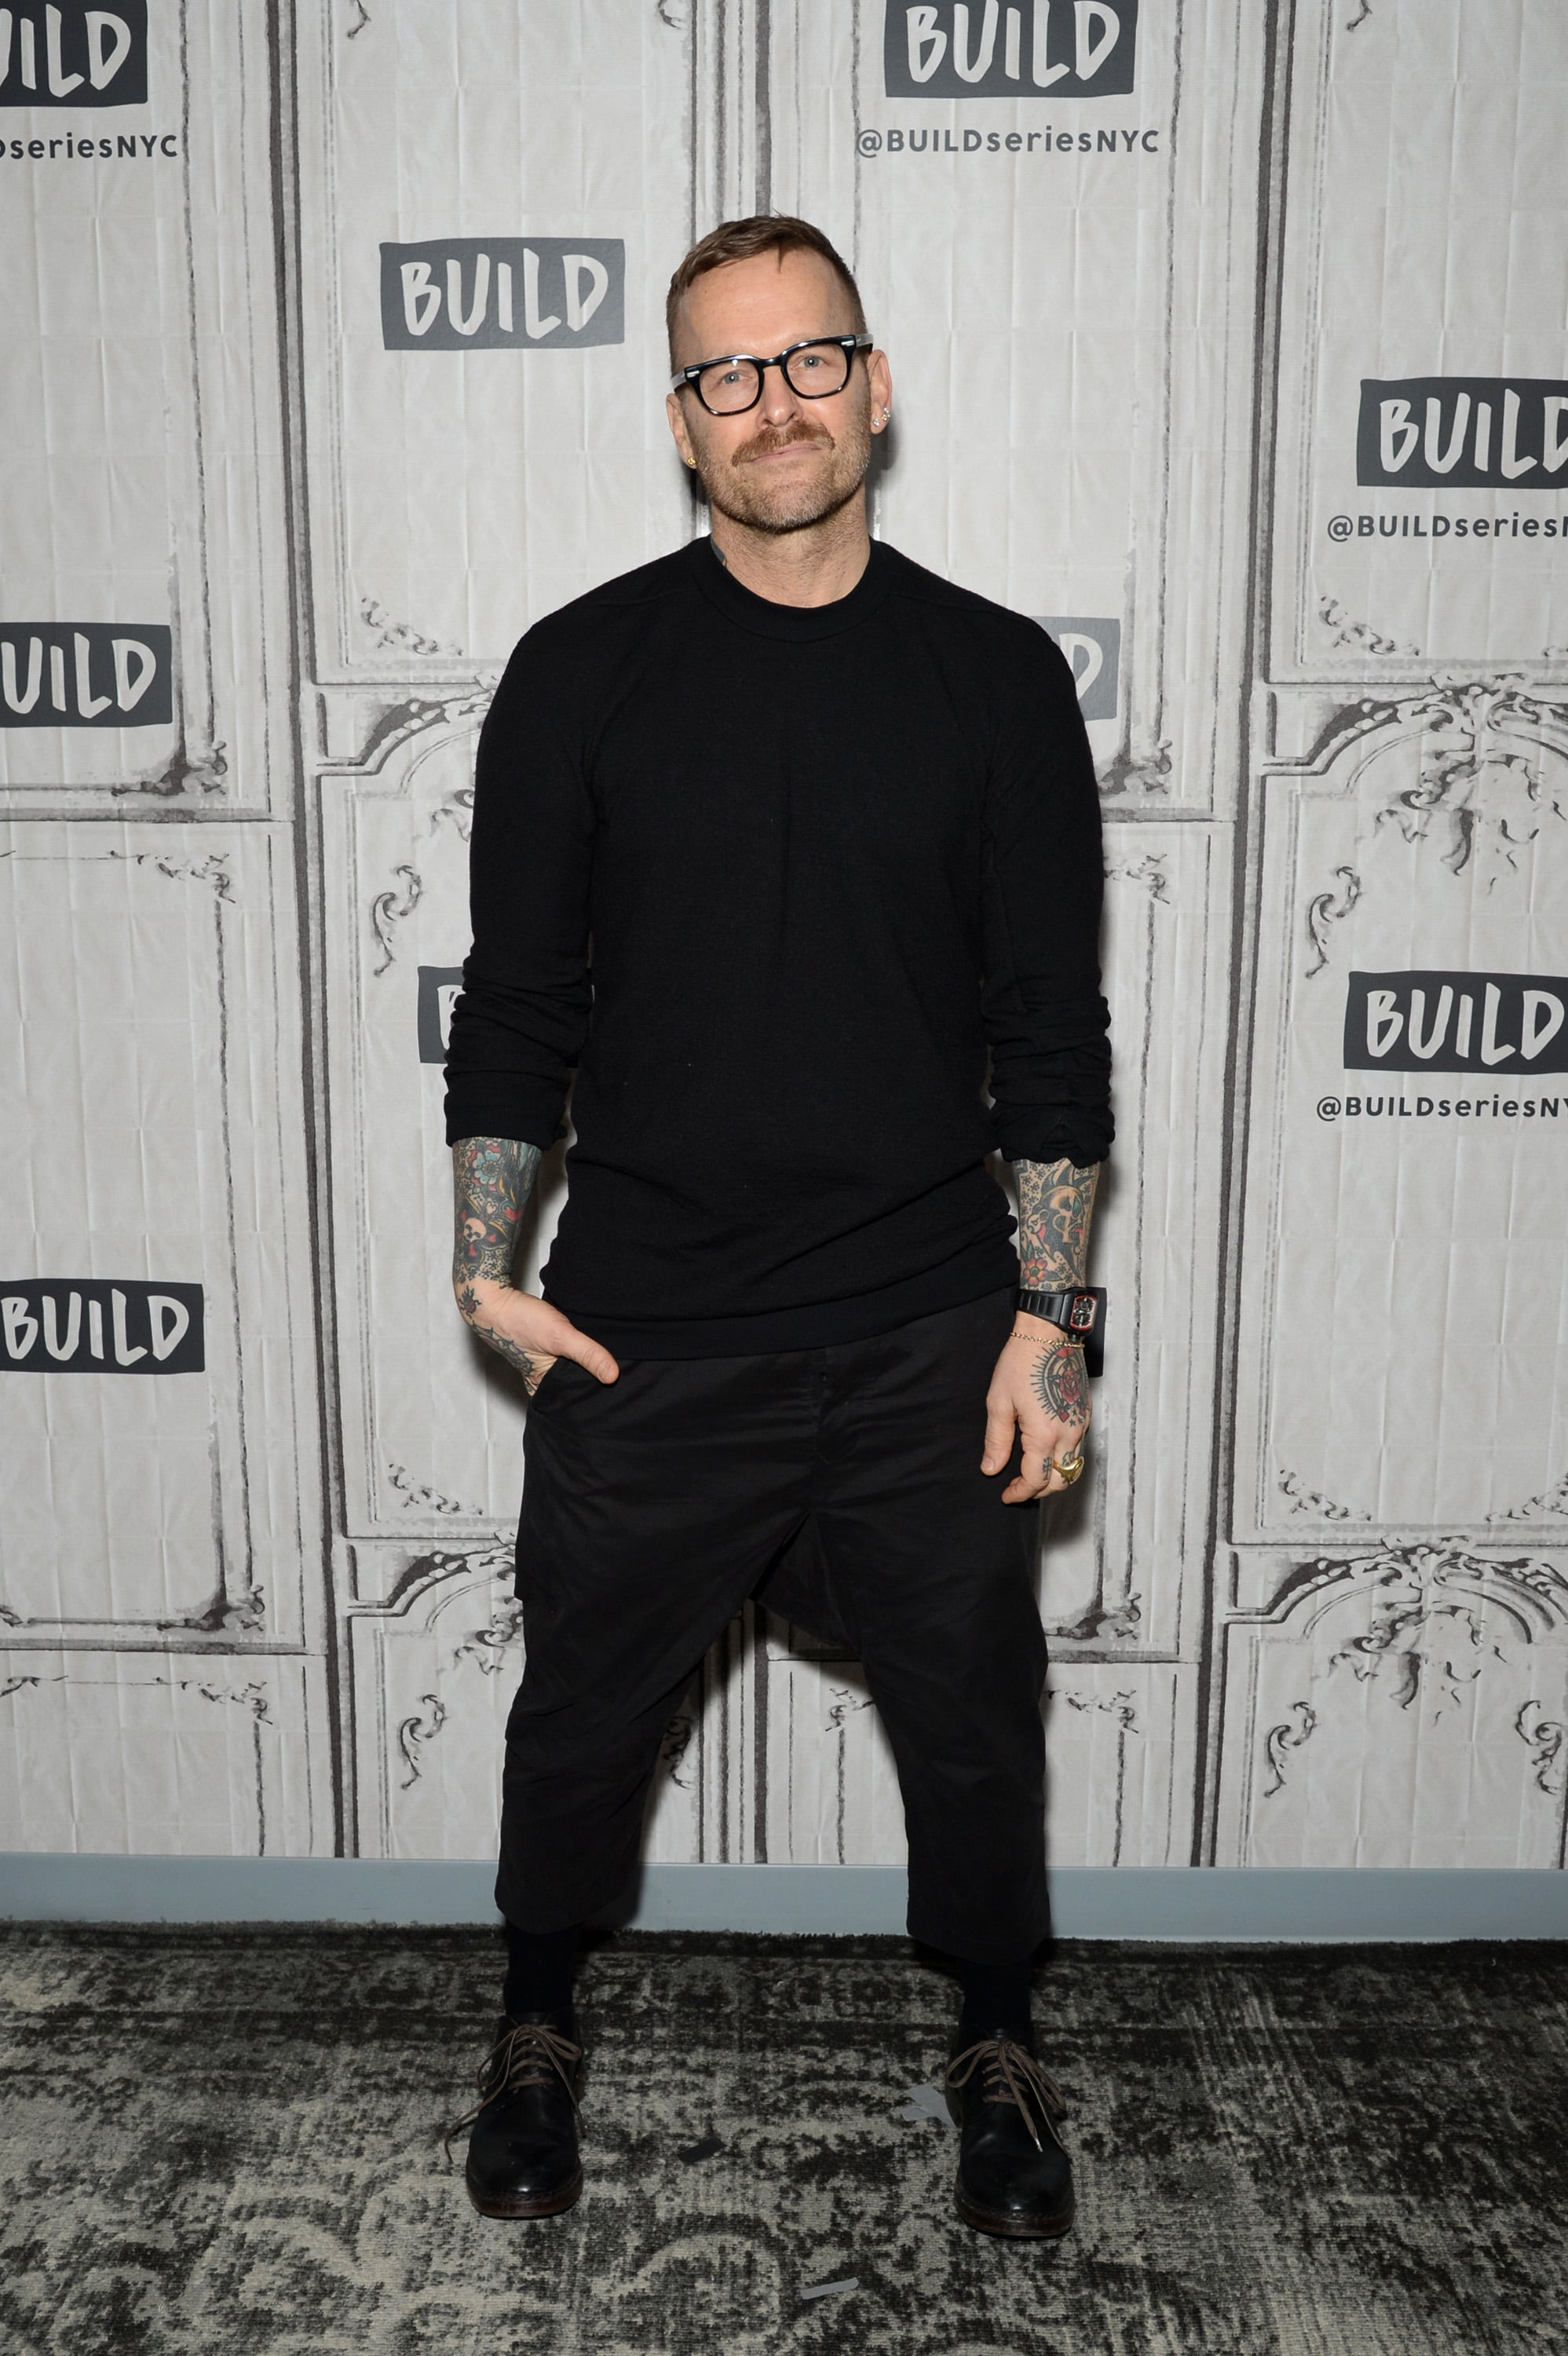 NEW YORK, NY - JANUARY 24:  Bob Harper attends the Build Series to discuss his new book 'The Super Carb Diet: Shed Pounds, Build Strength, Eat Real Food' at Build Studio on January 24, 2018 in New York City.  (Photo by Andrew Toth/Getty Images)